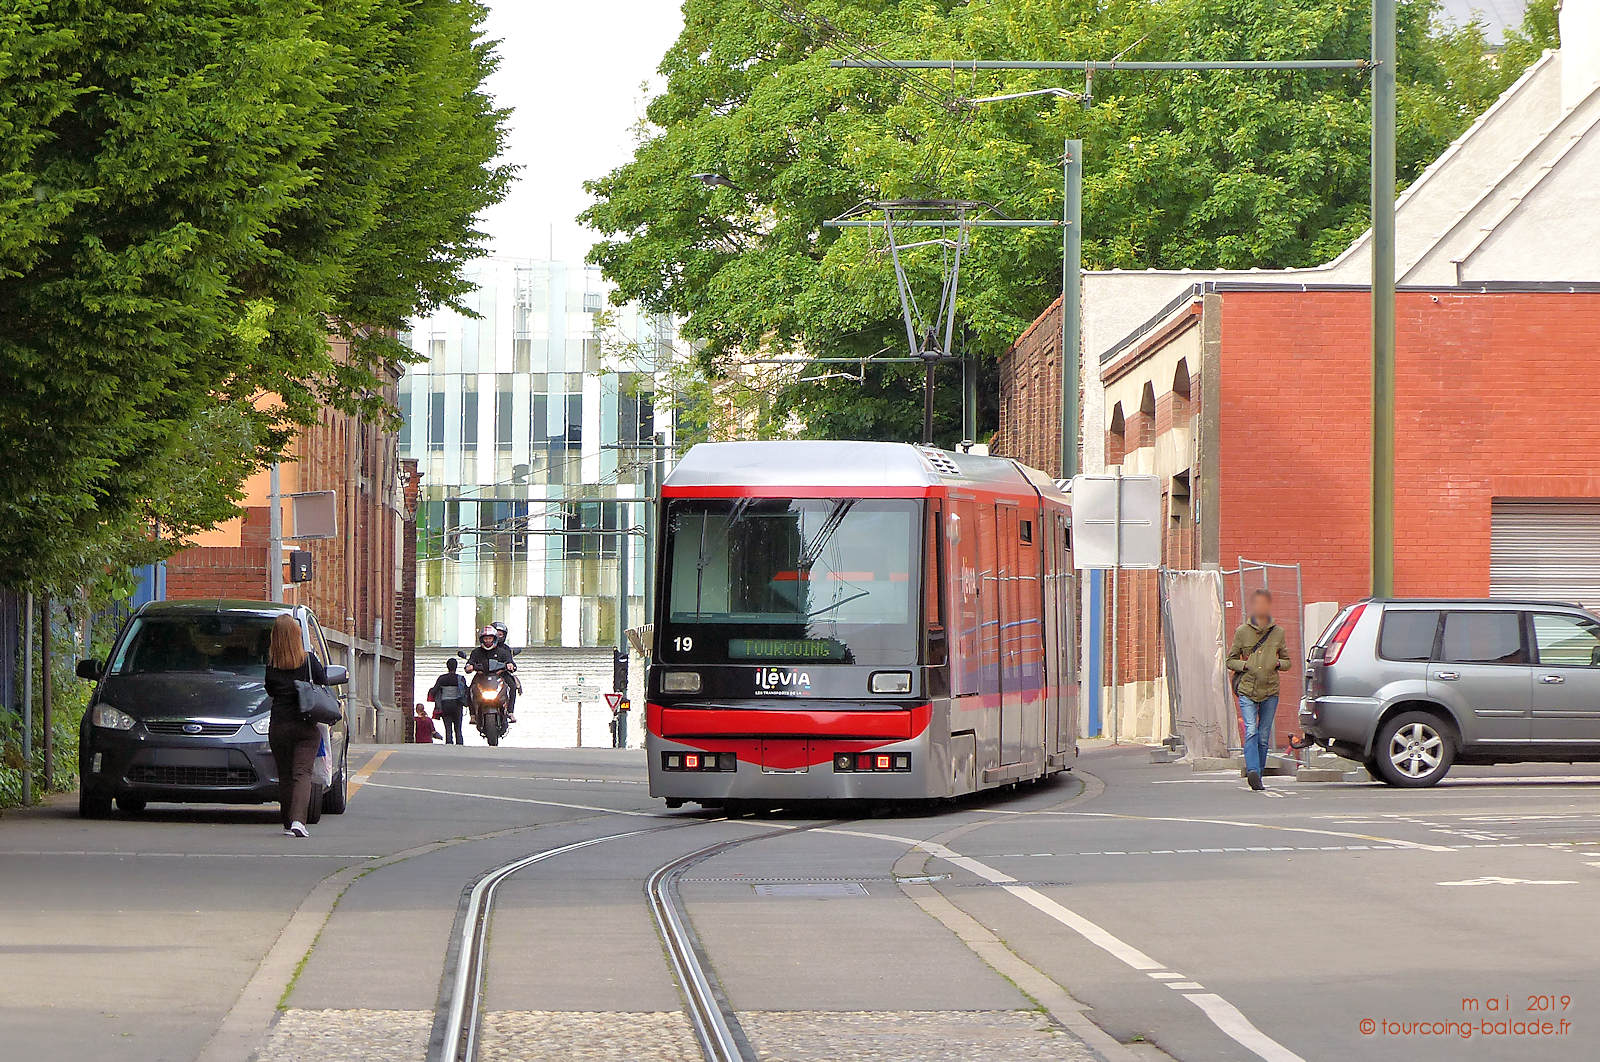 Rue Chanzy, Tourcoing - Tram, voitures, 2 roues, piétons.